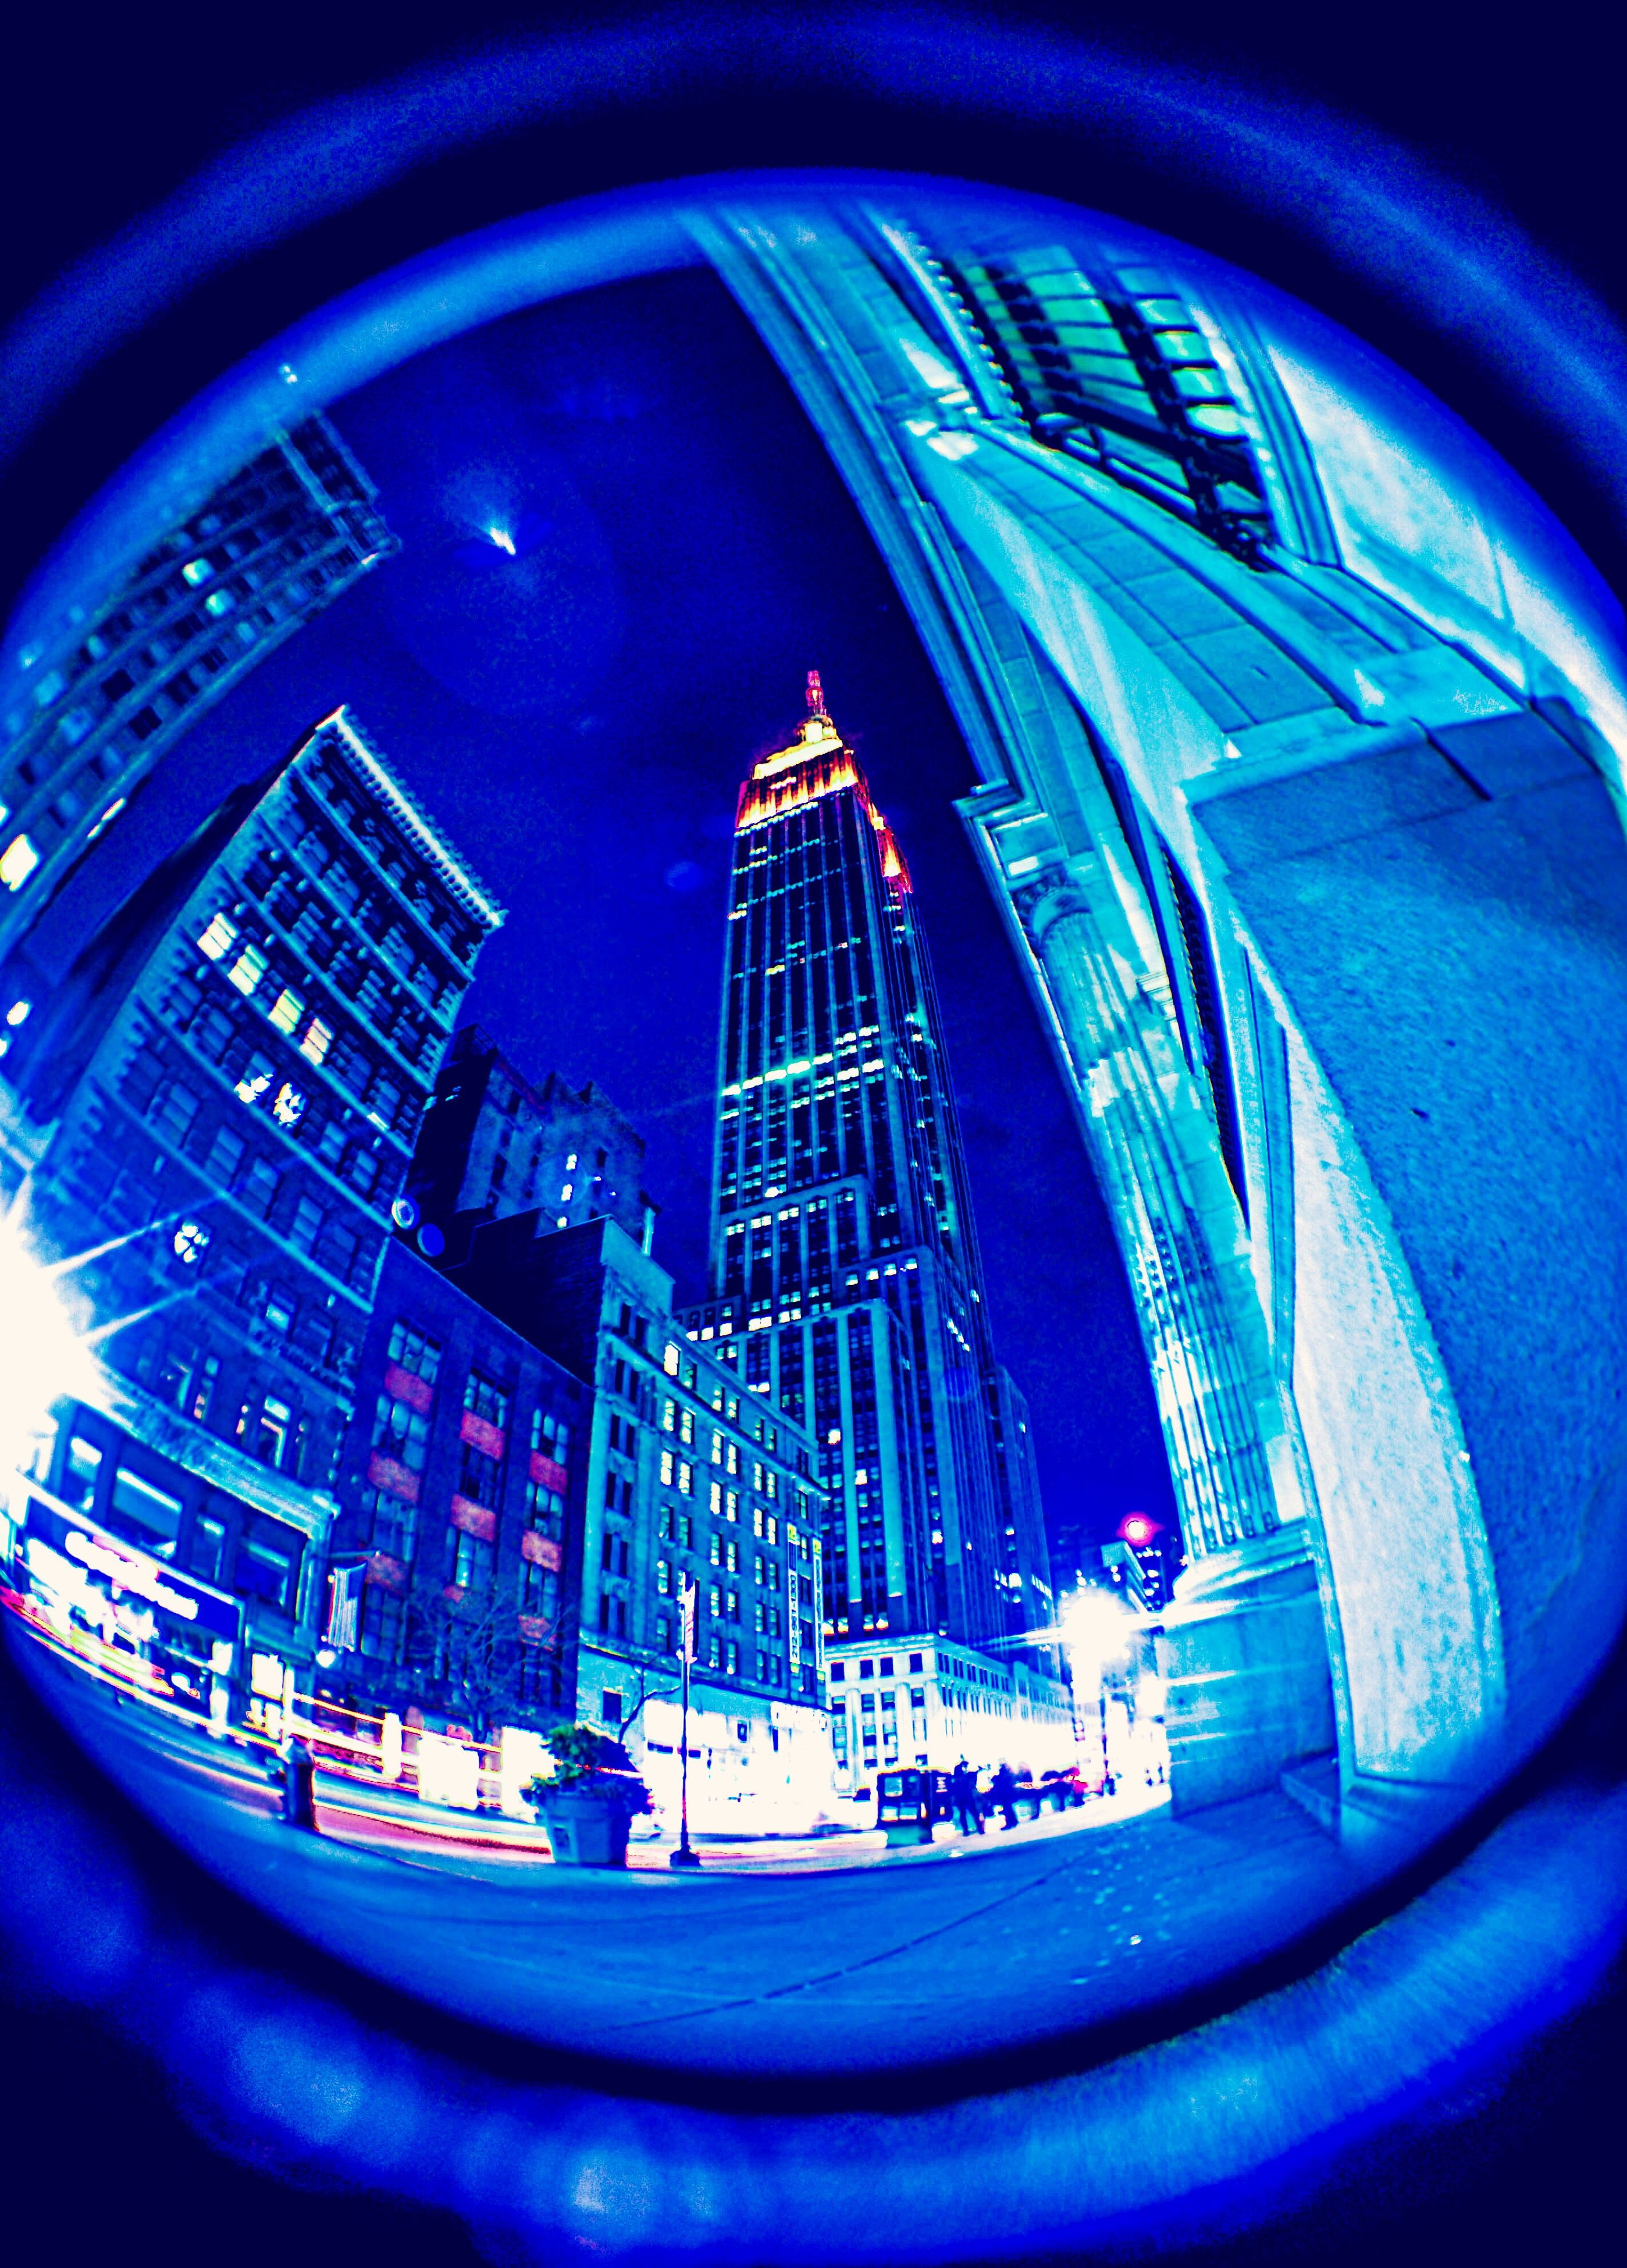 architecture, built structure, building exterior, city, mode of transport, transportation, blue, low angle view, travel, modern, fish-eye lens, car, glass - material, tower, reflection, capital cities, land vehicle, building, travel destinations, circle